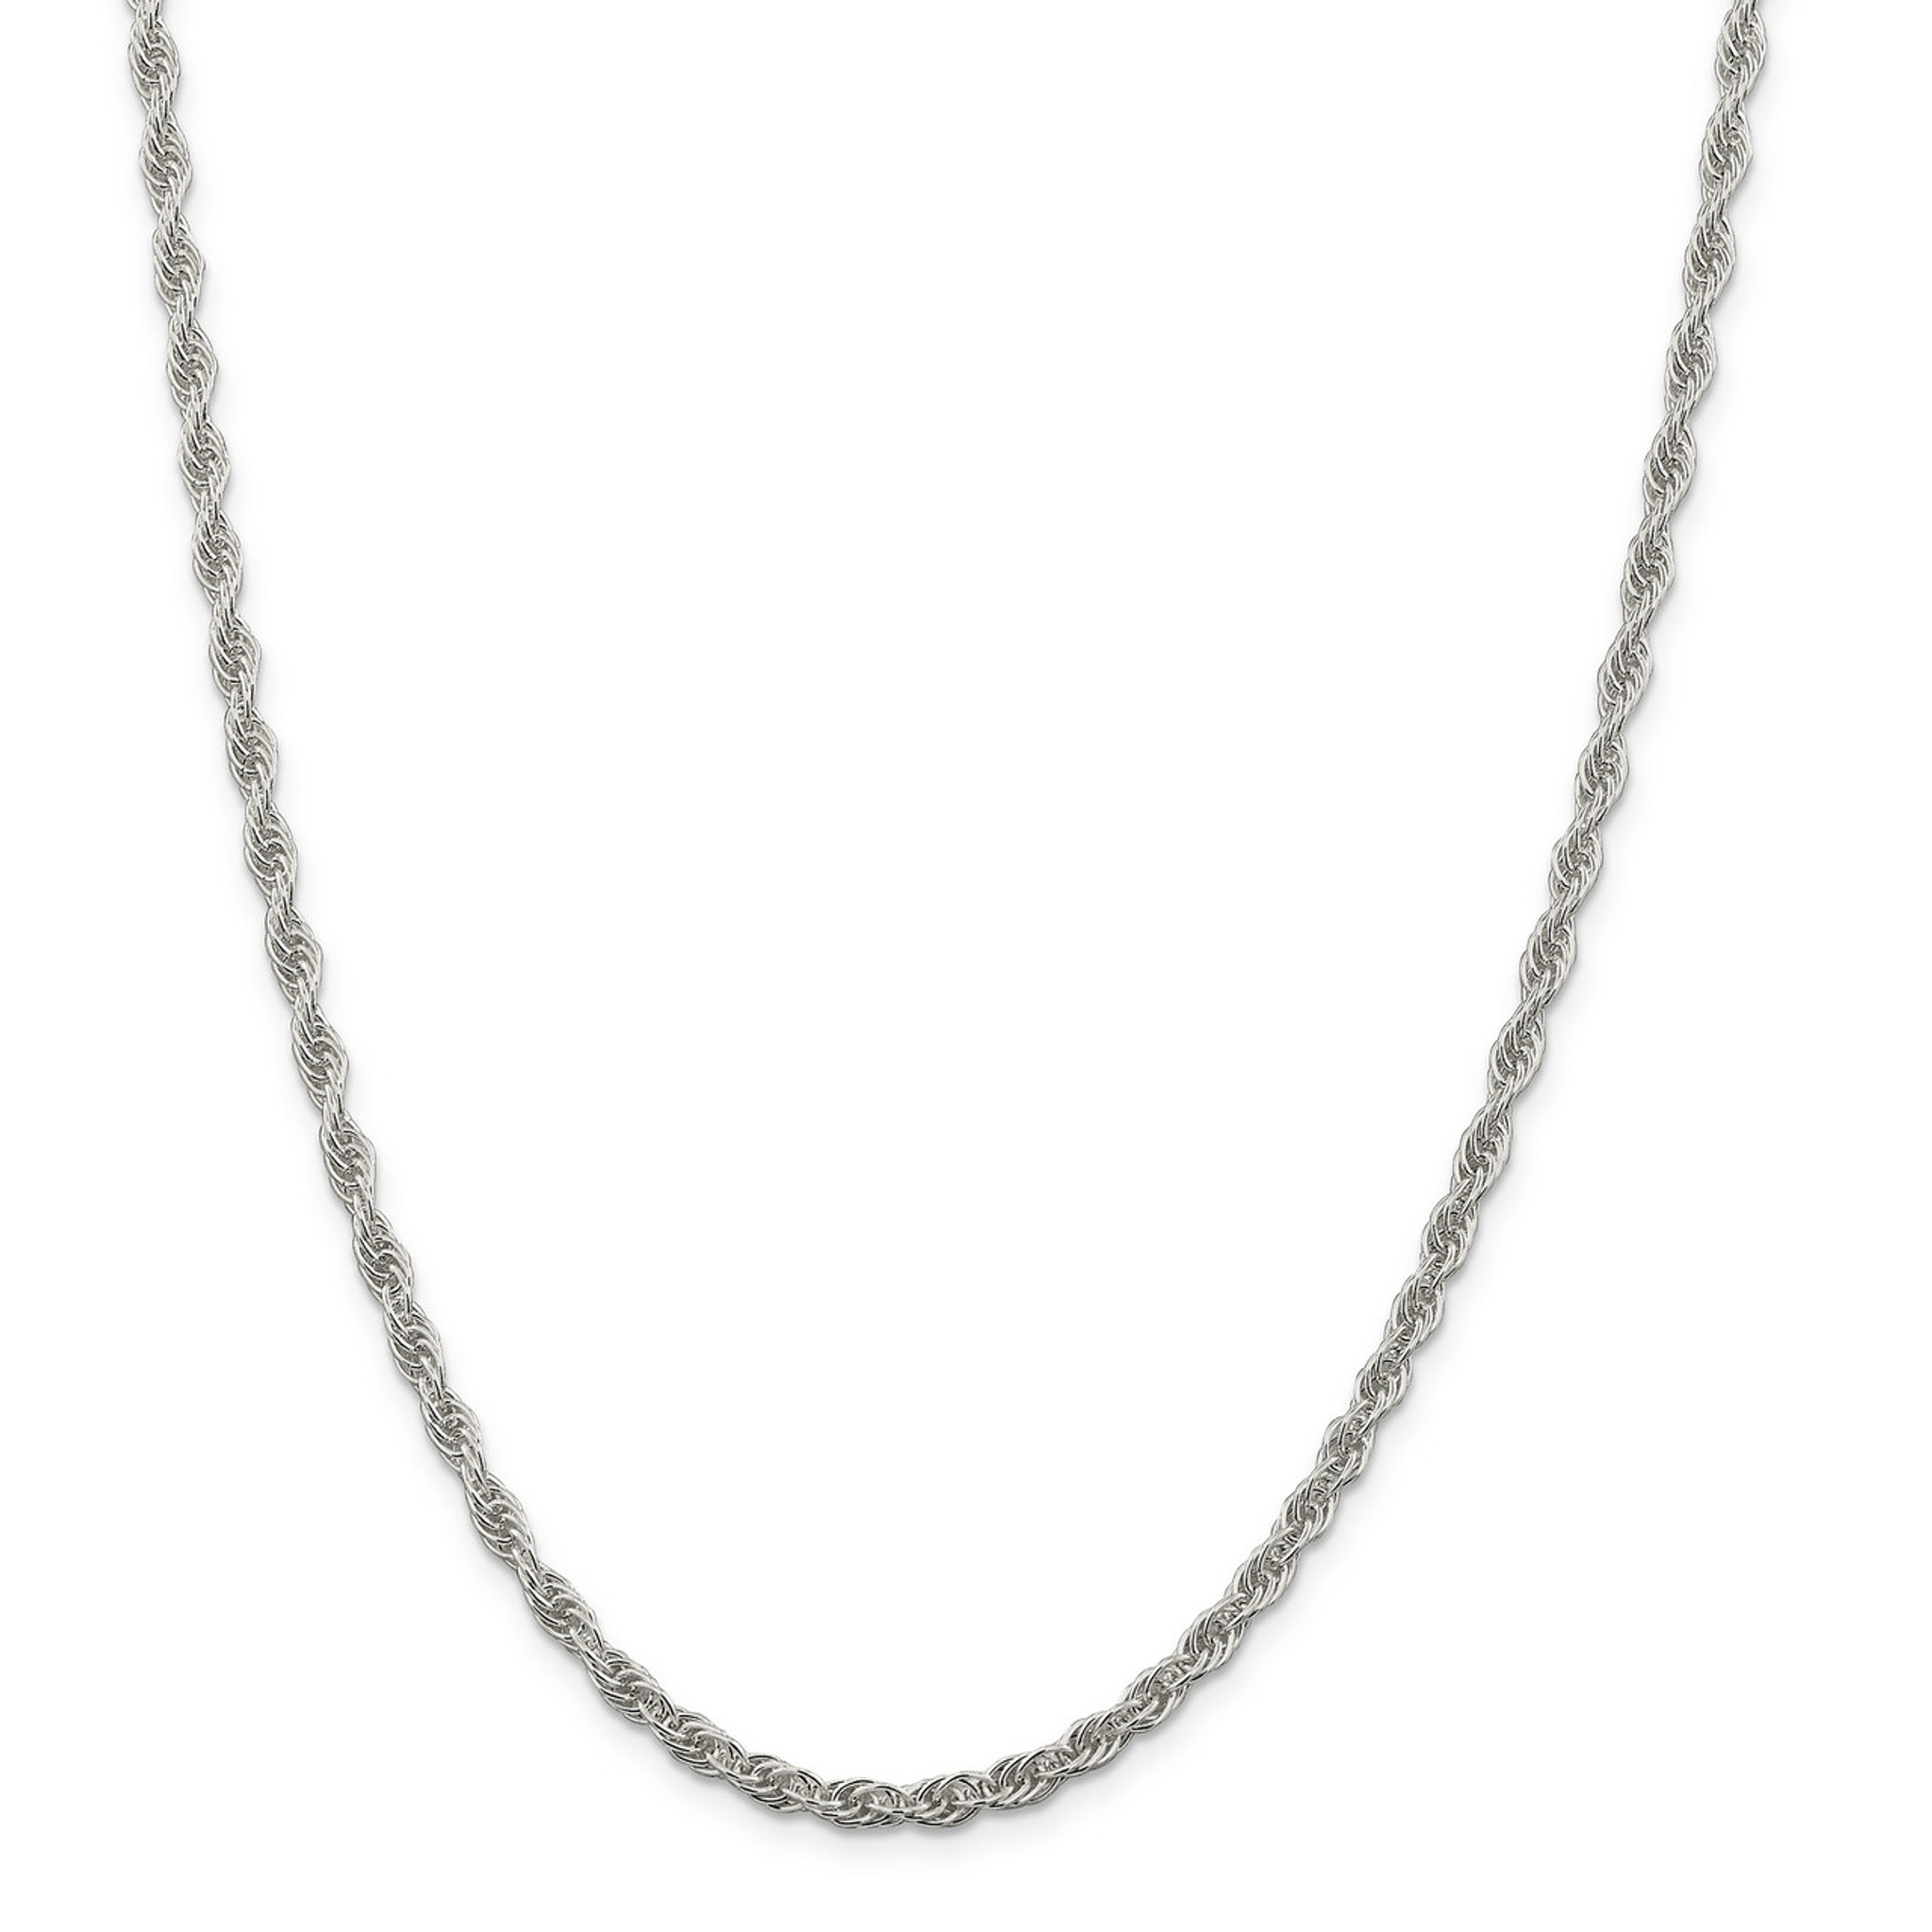 1.6mm Loose Rope Chain